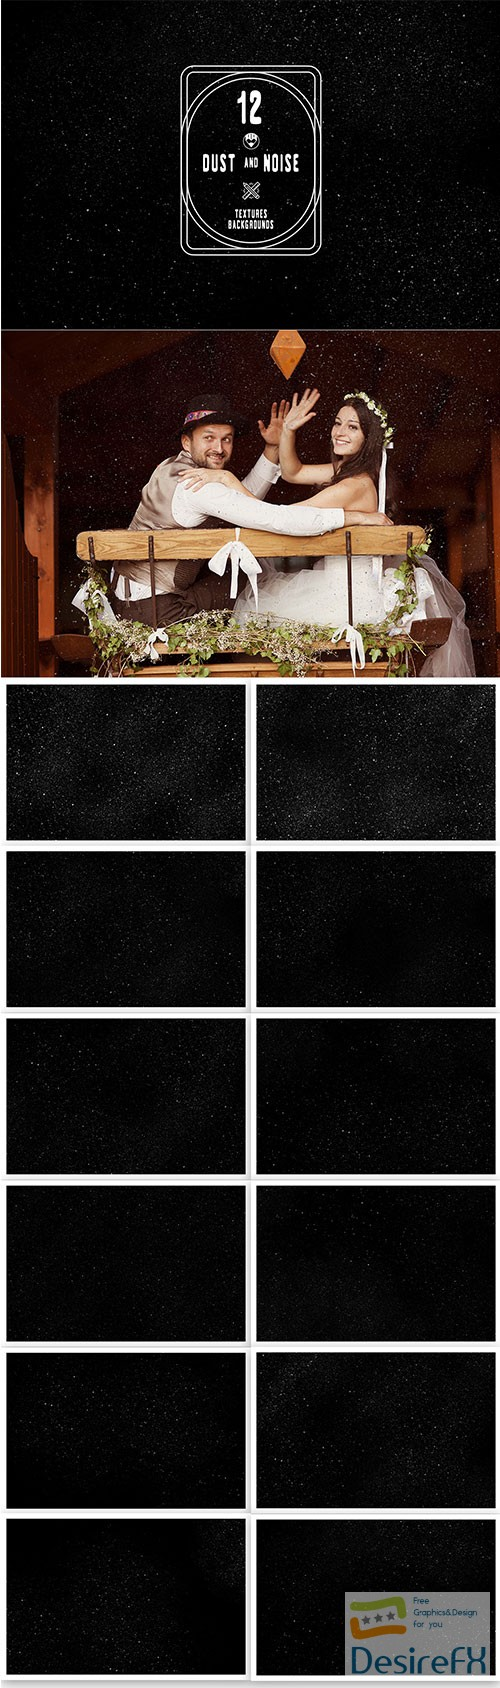 stock-images - 12 Dust and noise textures backgrounds